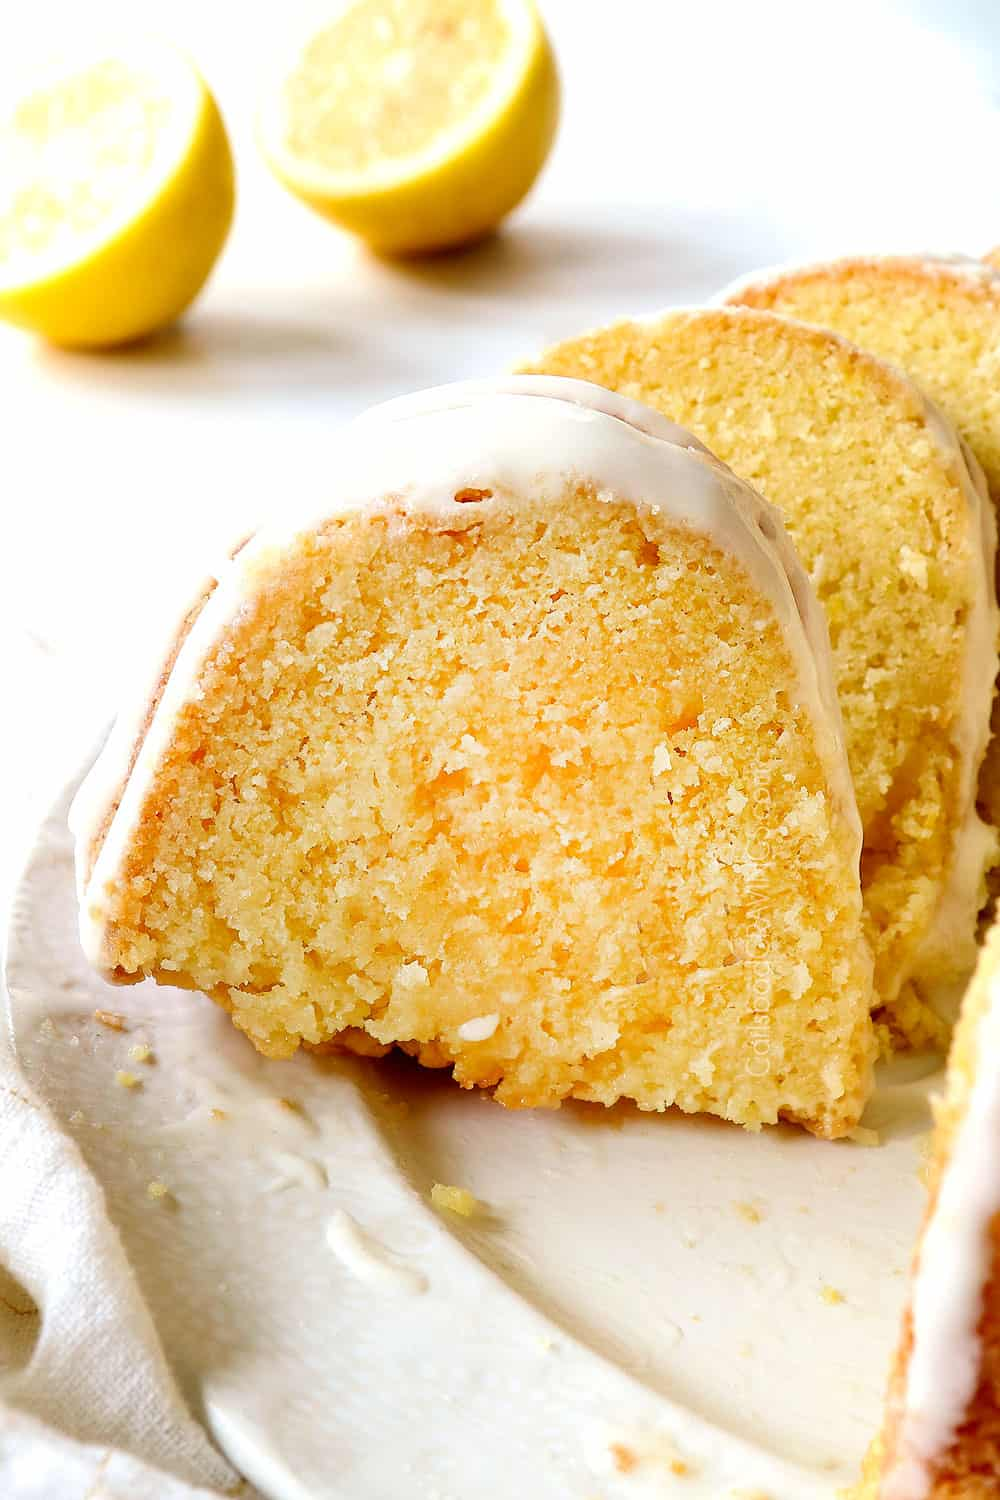 up close of a slice of lemon pound cake recipe showing how moist it is